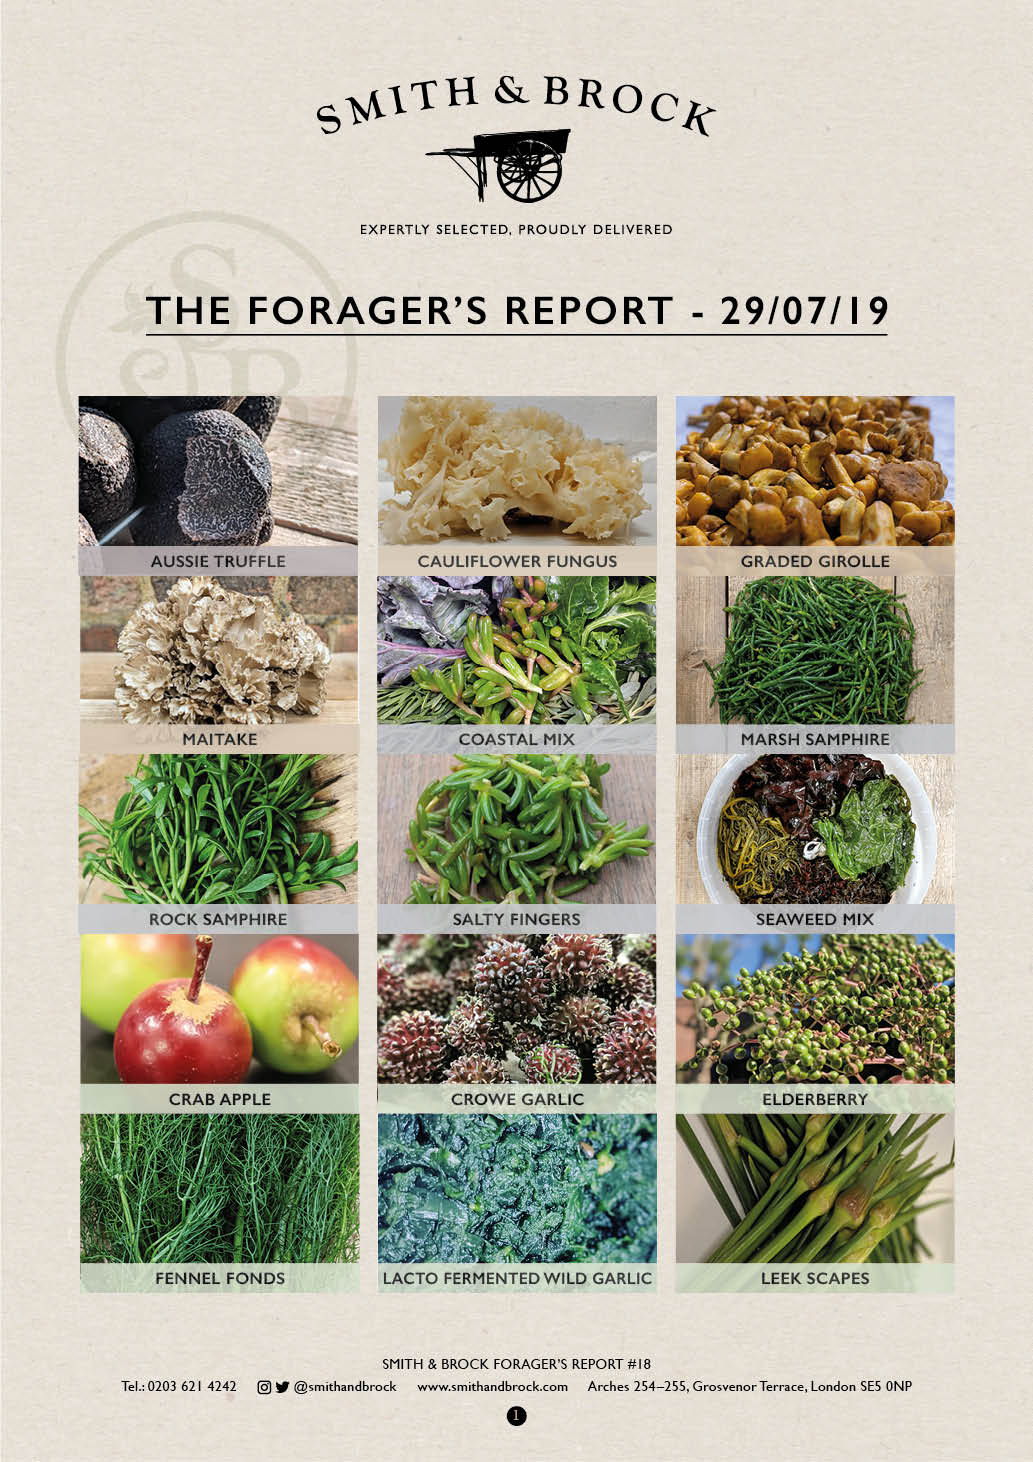 Smith&Brock Foraged Products Report 29 July 2019 18